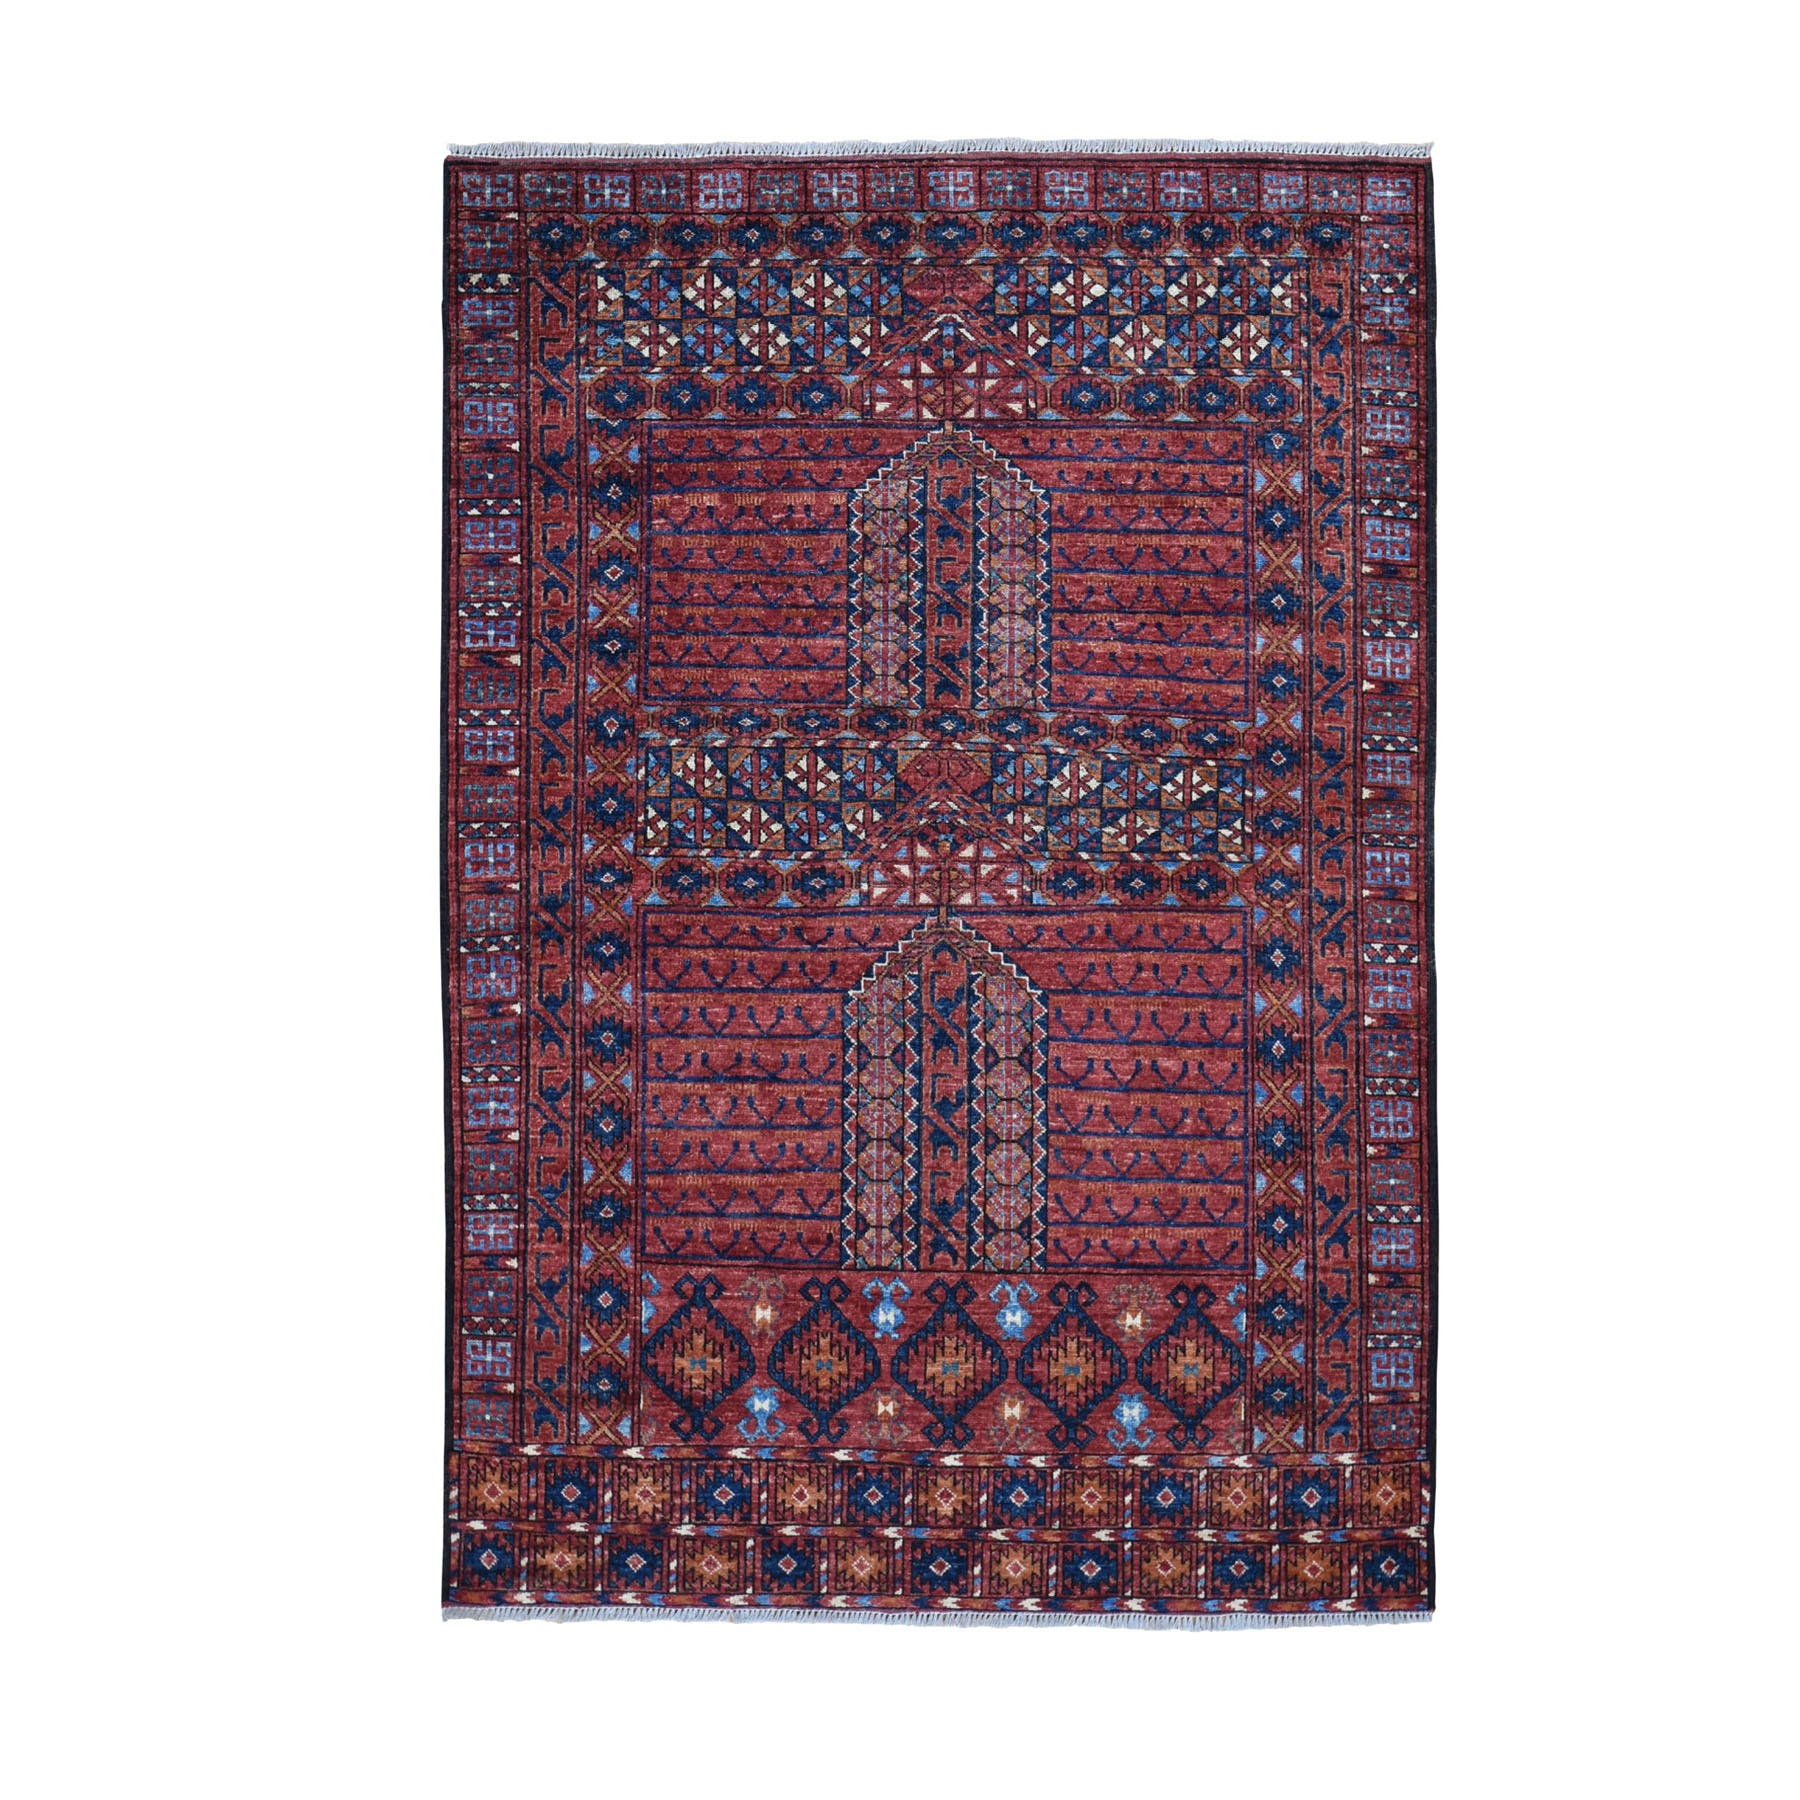 Nomadic And Village Collection Hand Knotted Red Rug No: 0196098